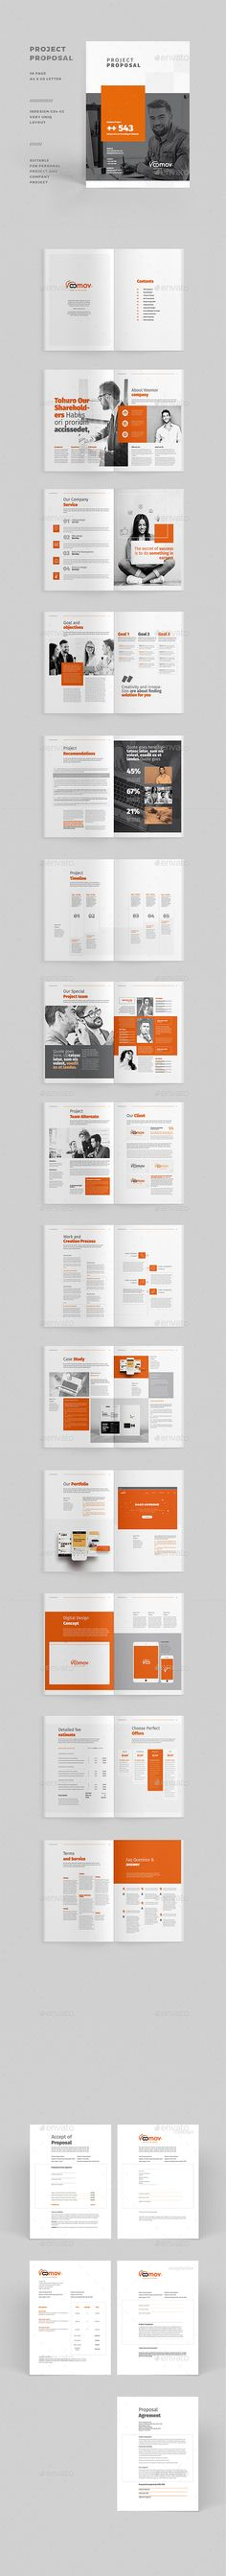 Proposal - Corporate Brochures Download here : https://graphicriver.net/item/proposal/18906953?s_rank=130&ref=Al-fatih